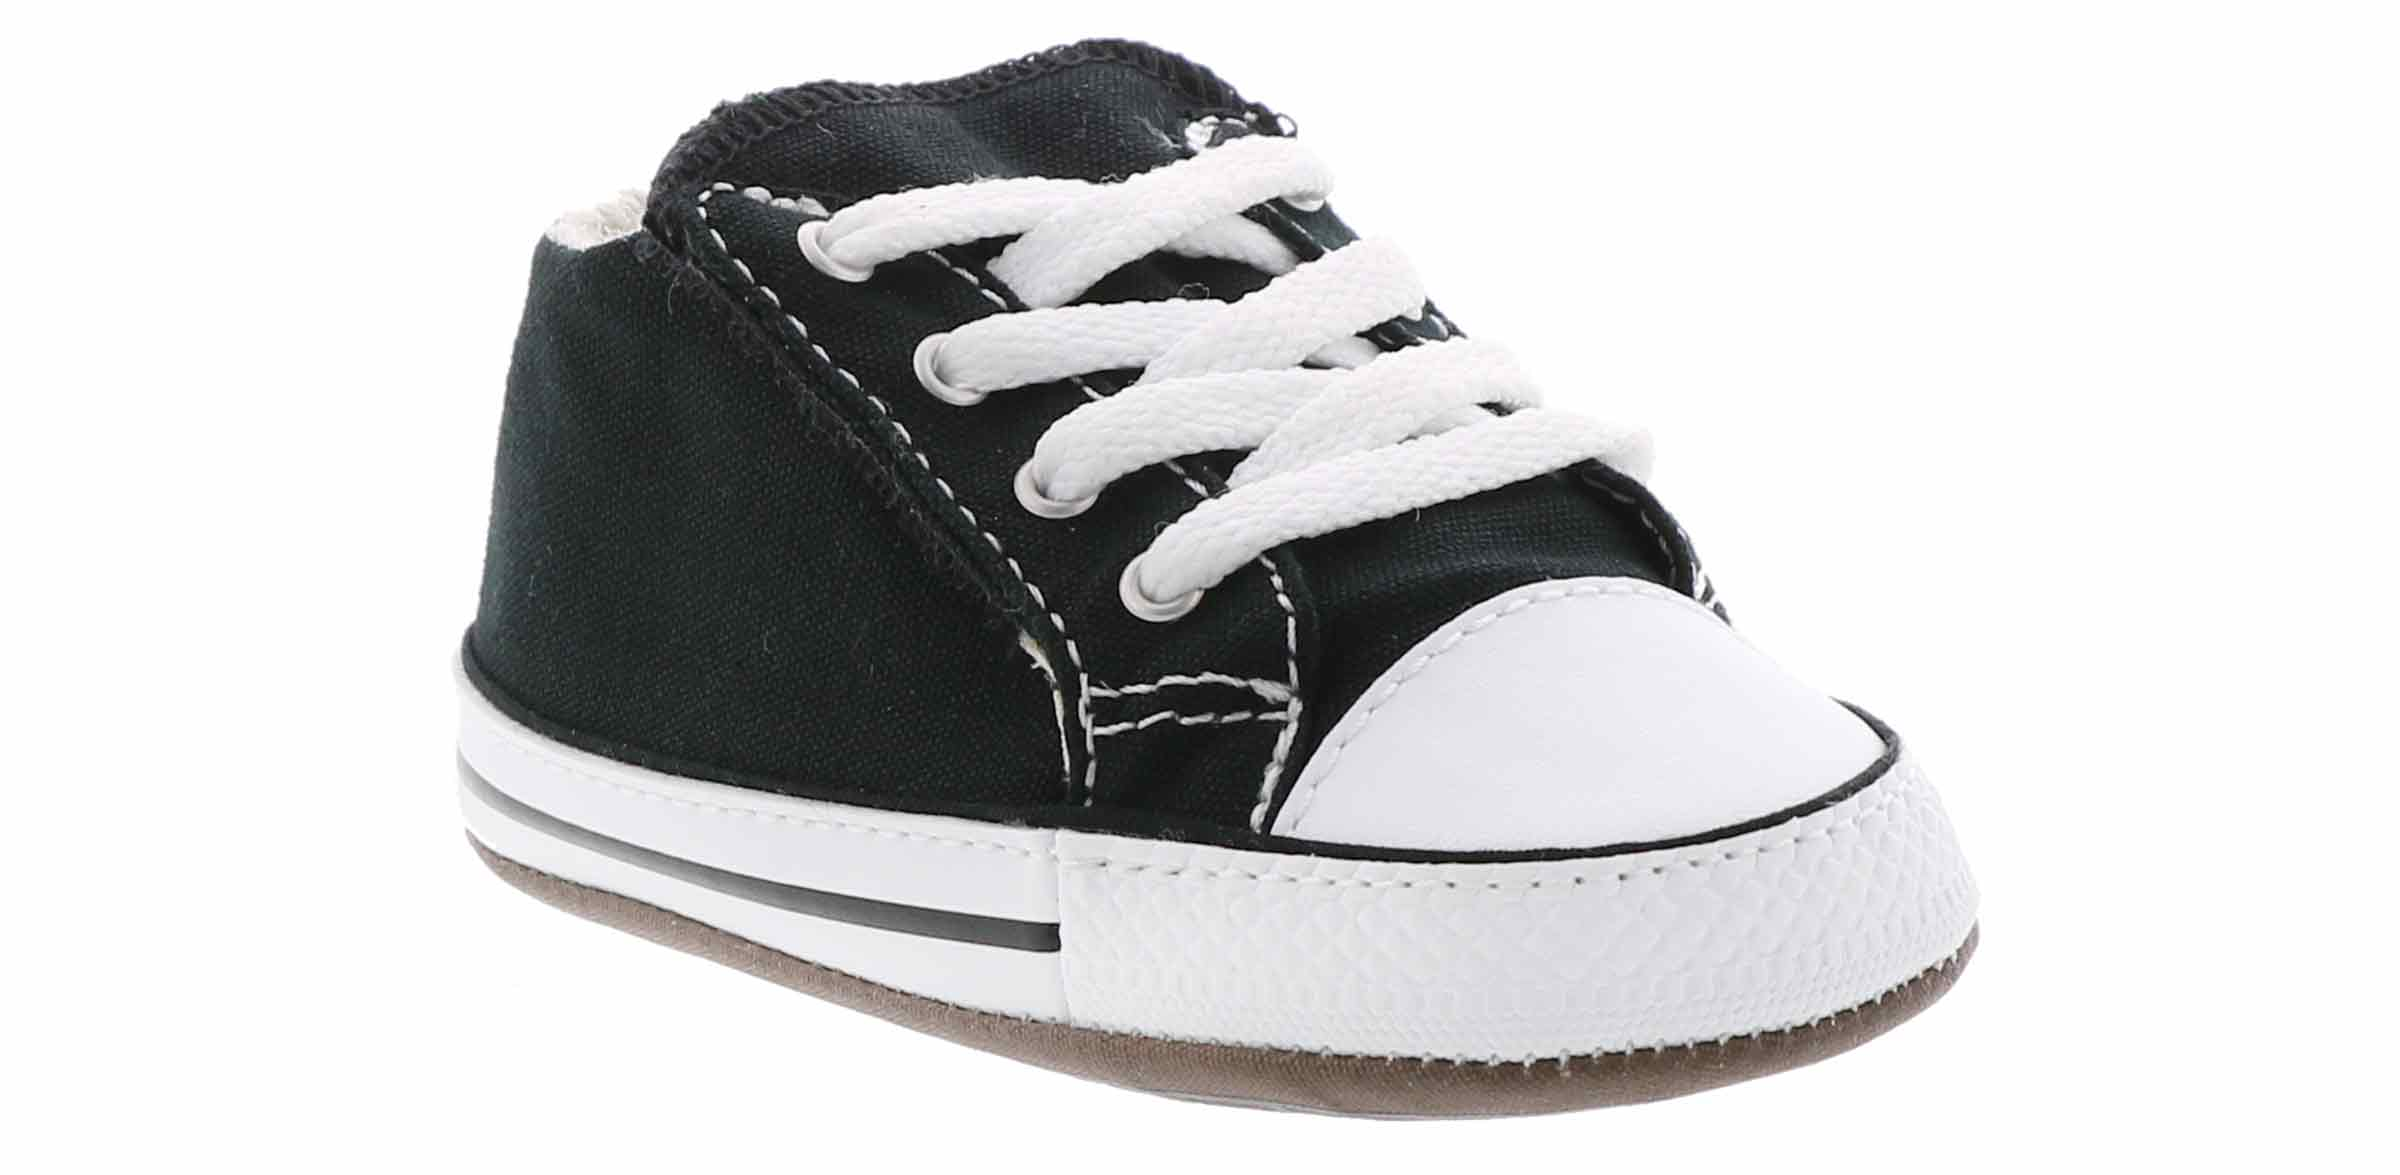 Chaussures Converse Bottines CTAS CRIBSTER Mid 865156C Black